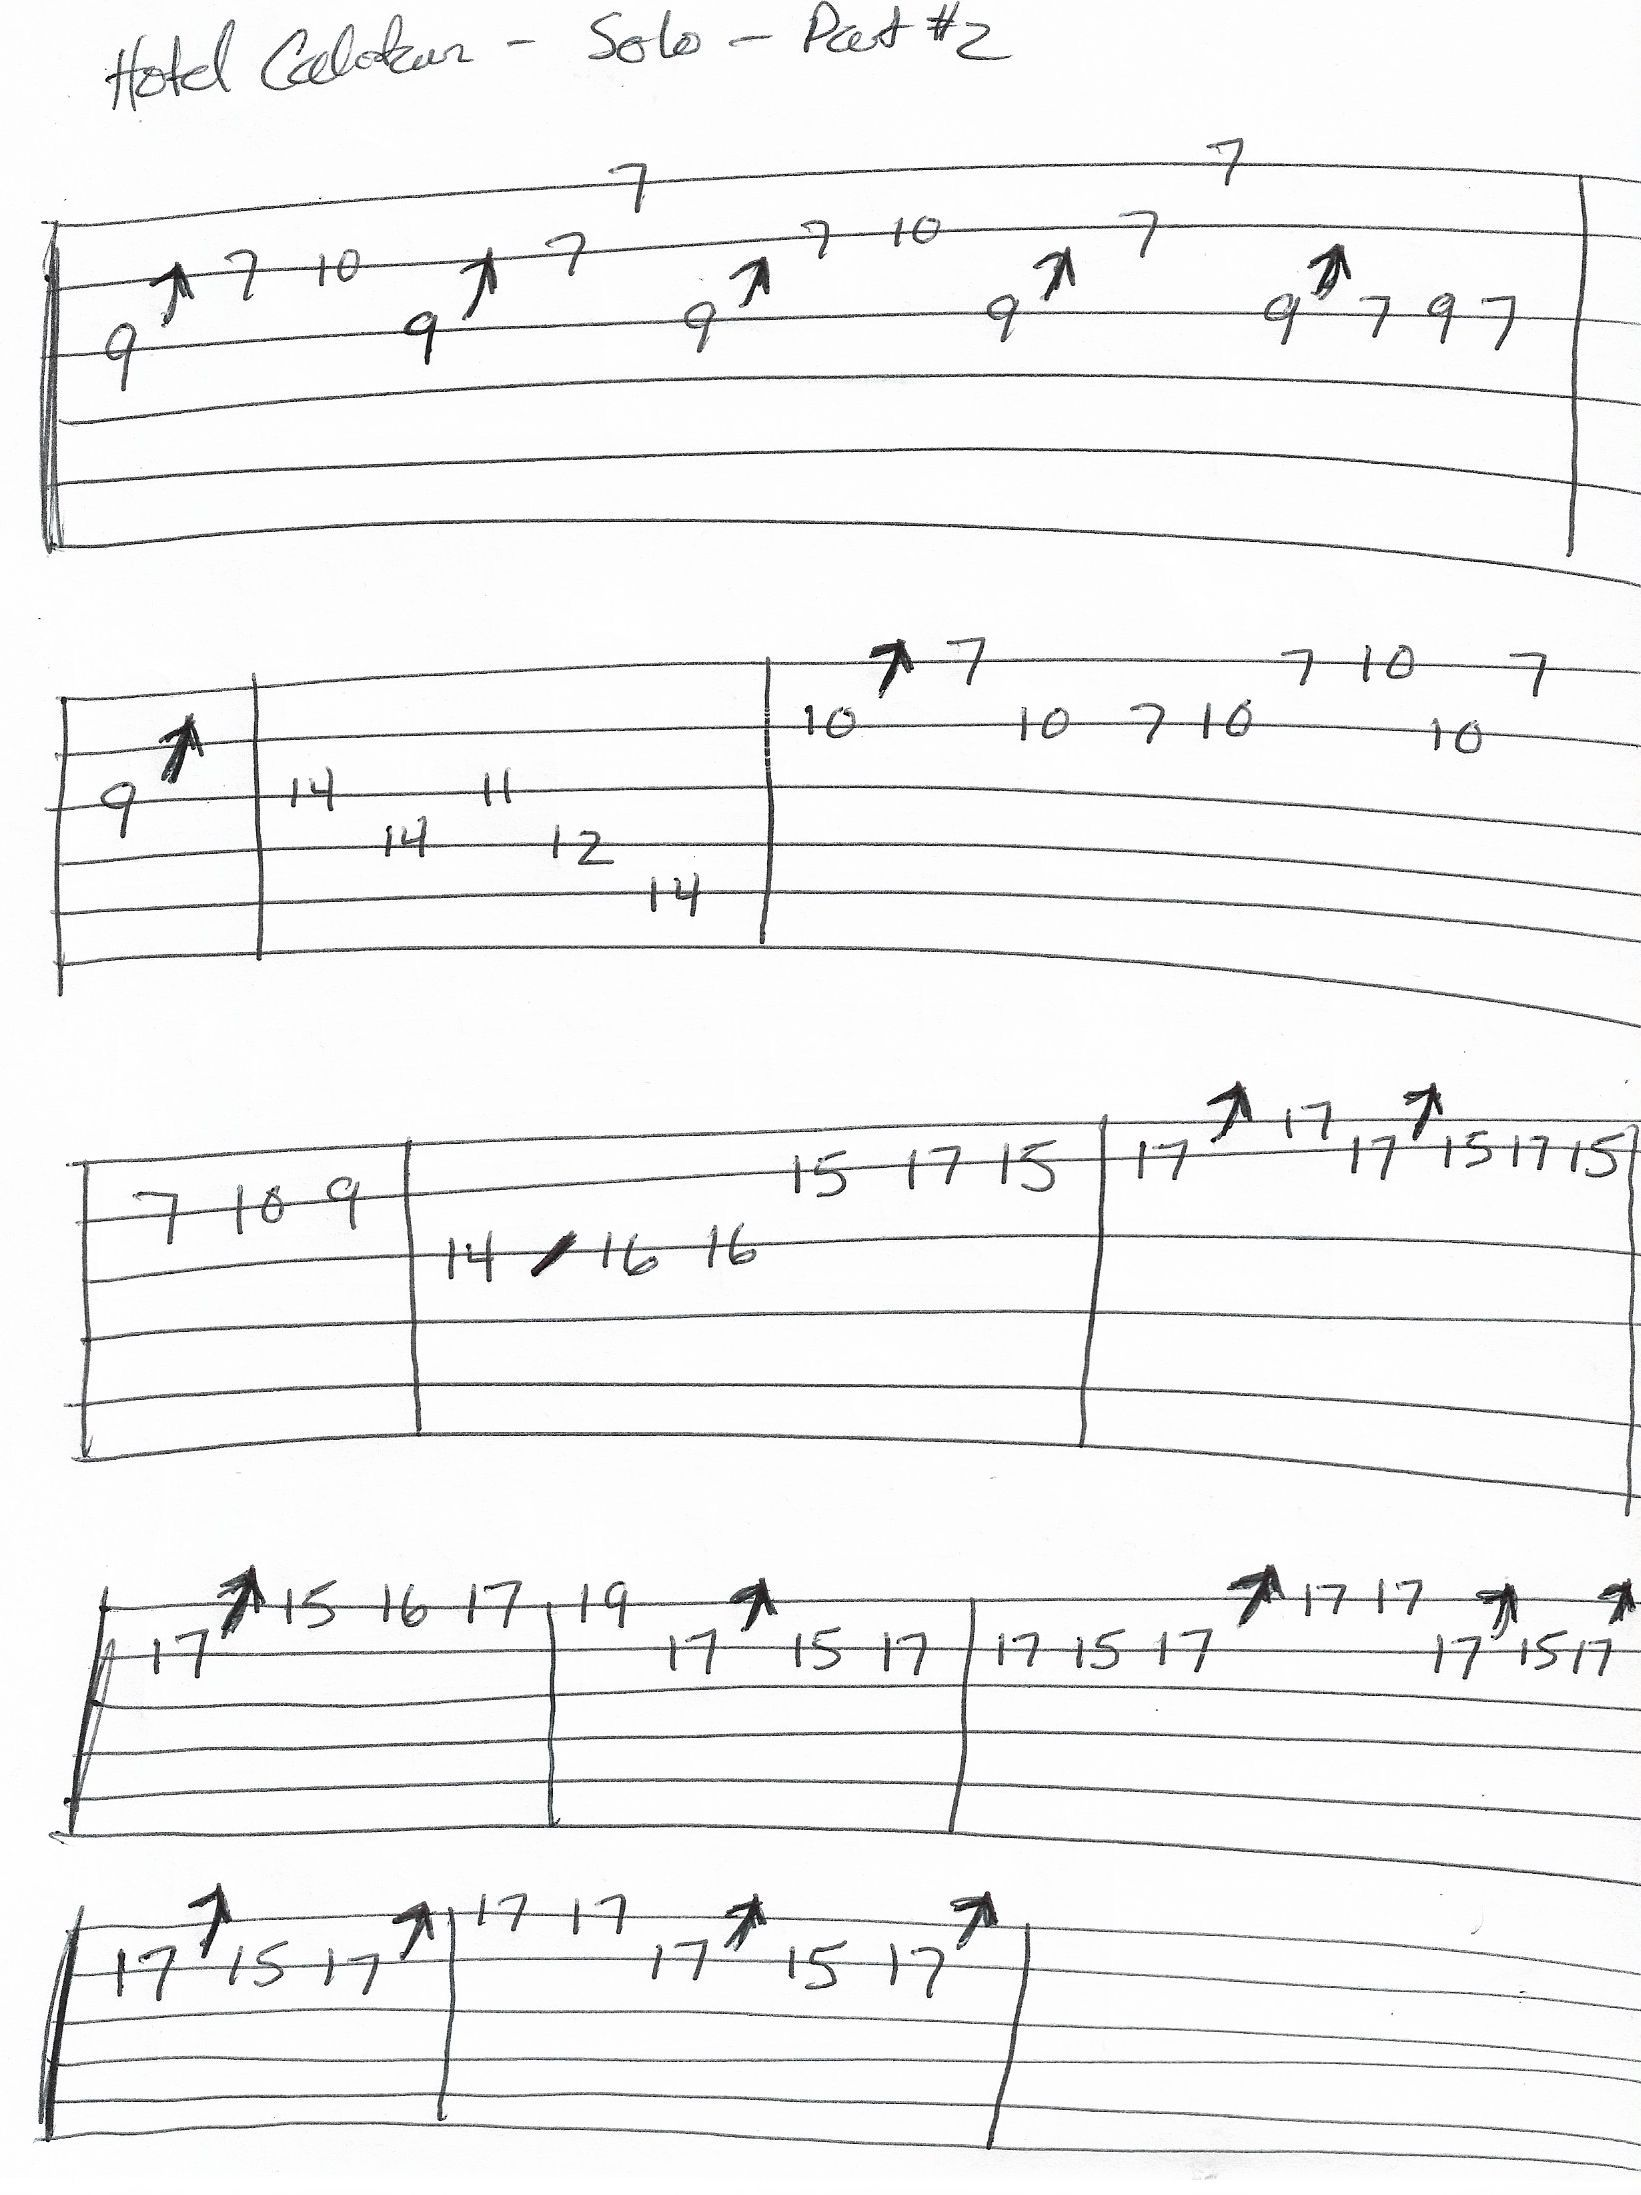 Hotel California Solo Guitar Tab Part 2 With Images